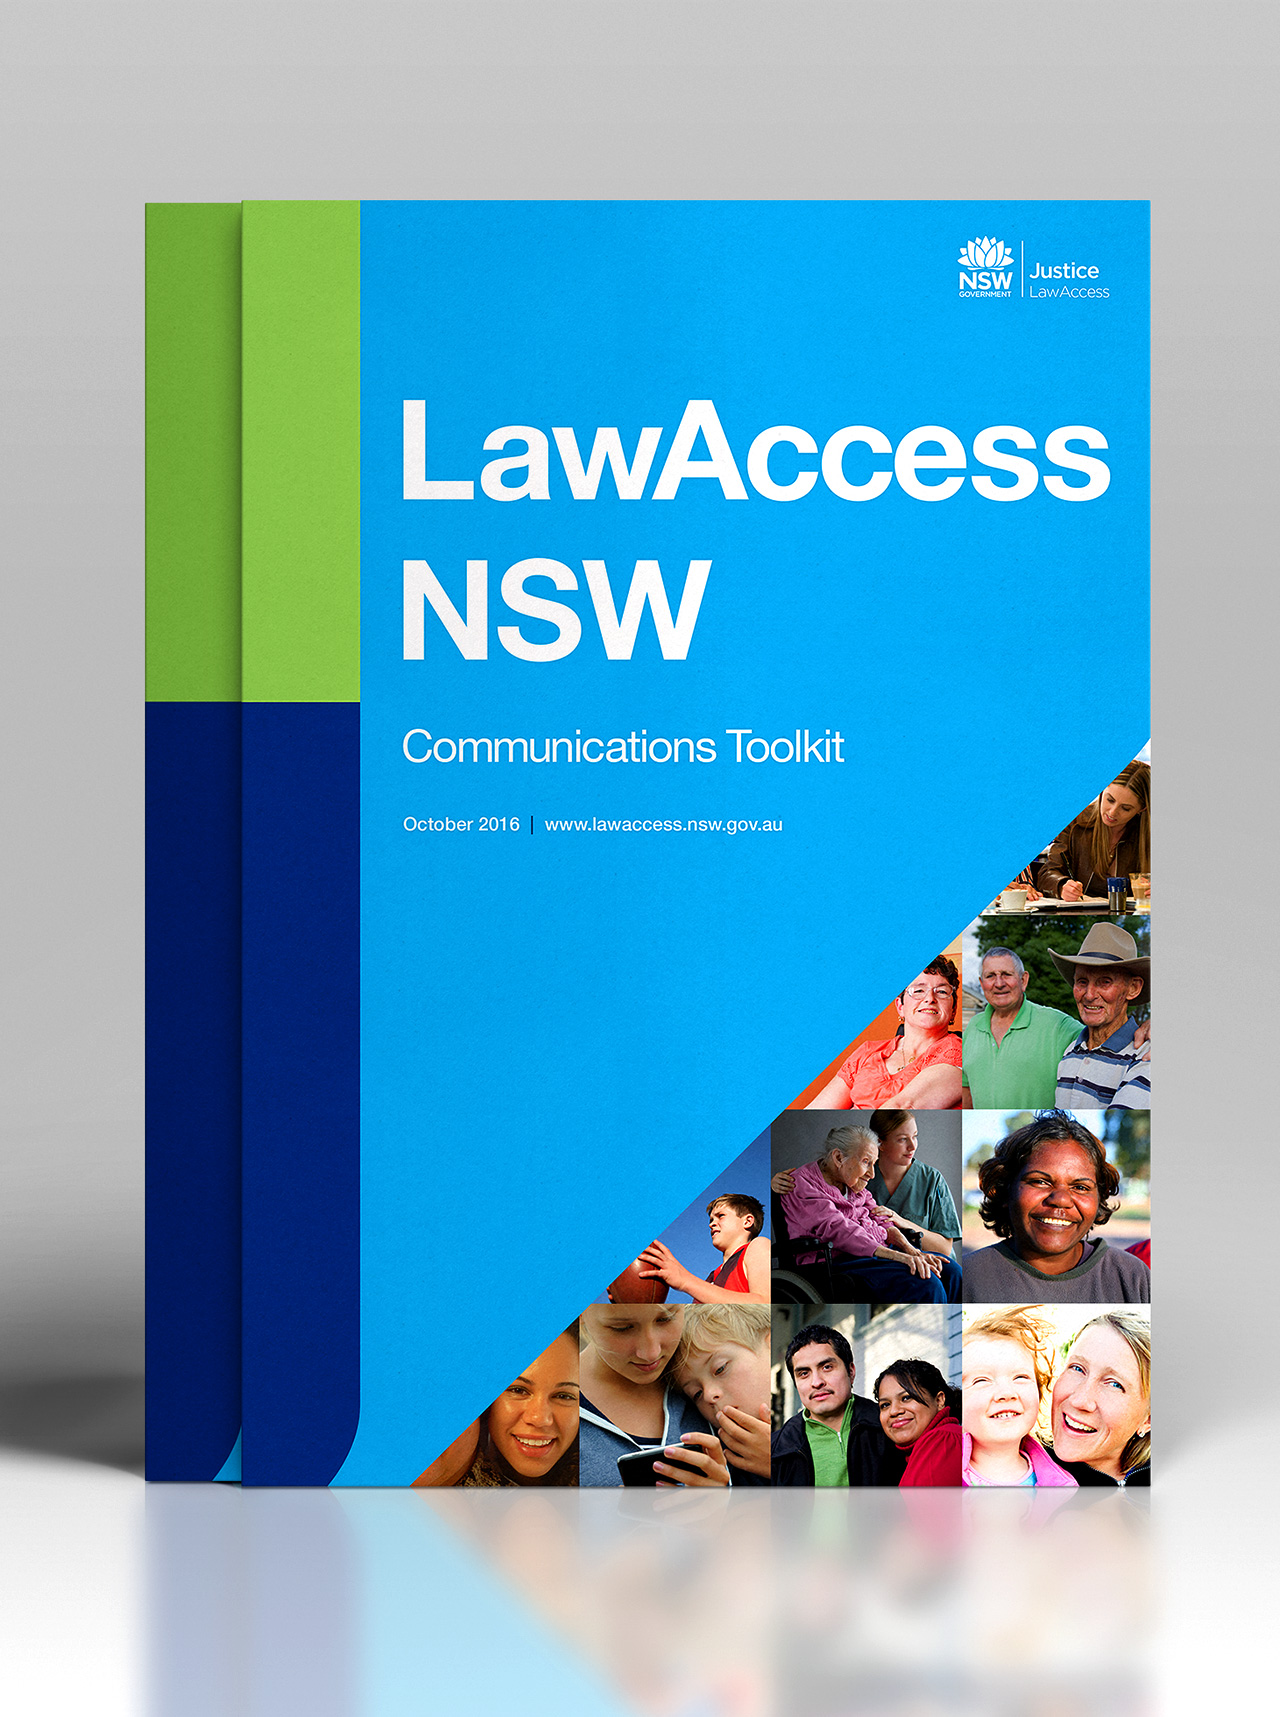 NSW JUSTICE DEPT. LAWACCESS